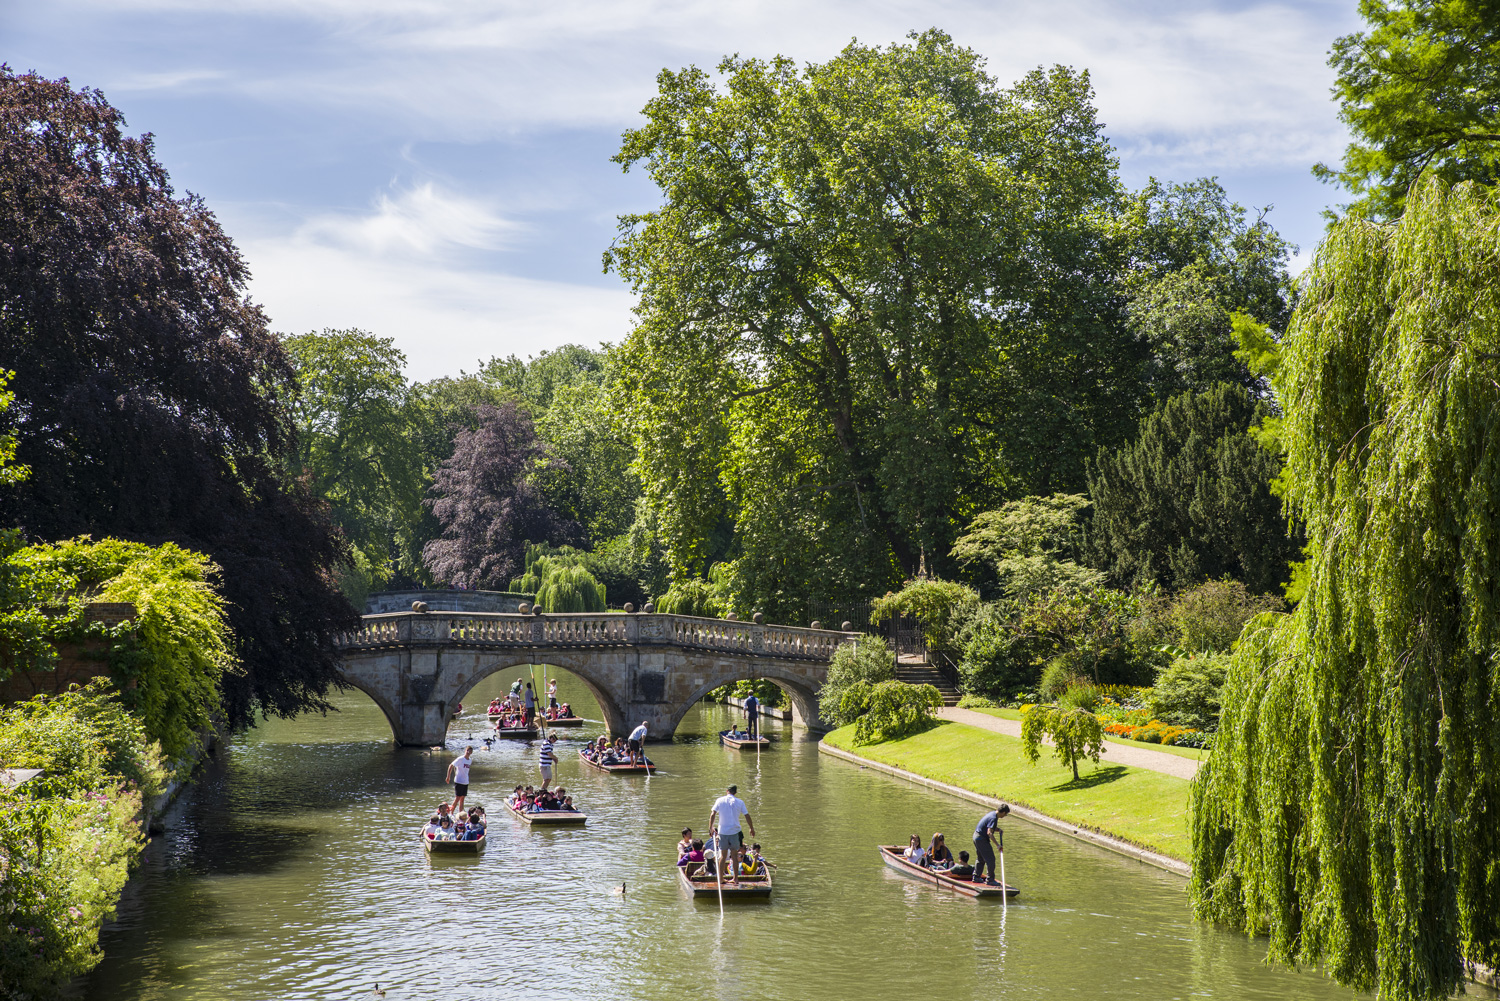 A picturesque view of Clare Bridge over the River Cam in Cambridge, UK